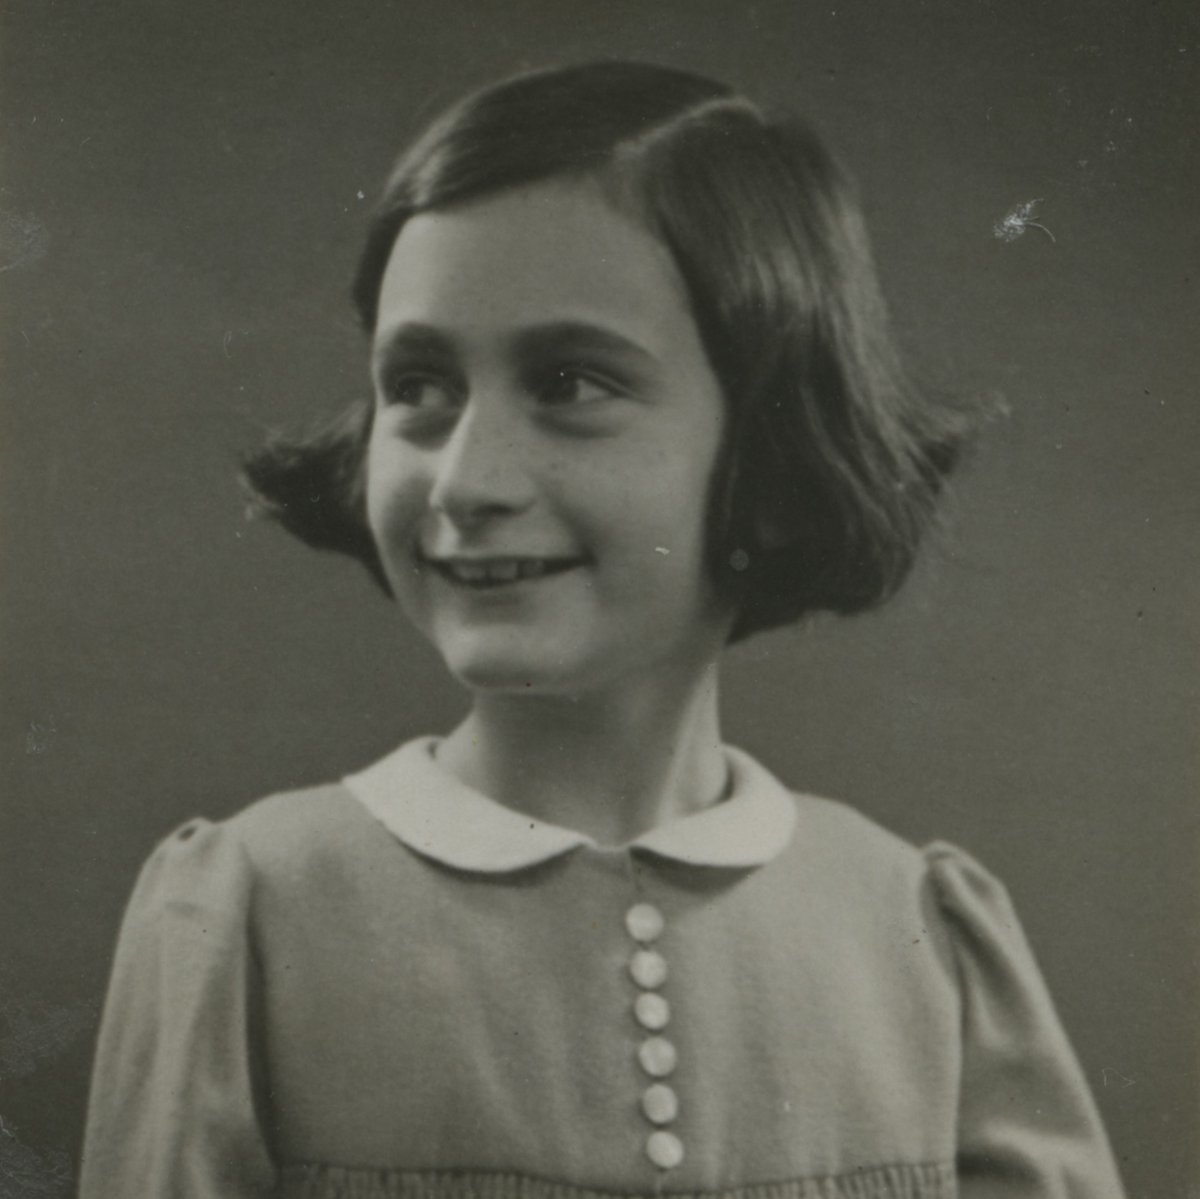 """""""In the long run, the sharpest weapon of all is a kind and gentle spirit.""""—#AnneFrank #Anne90"""